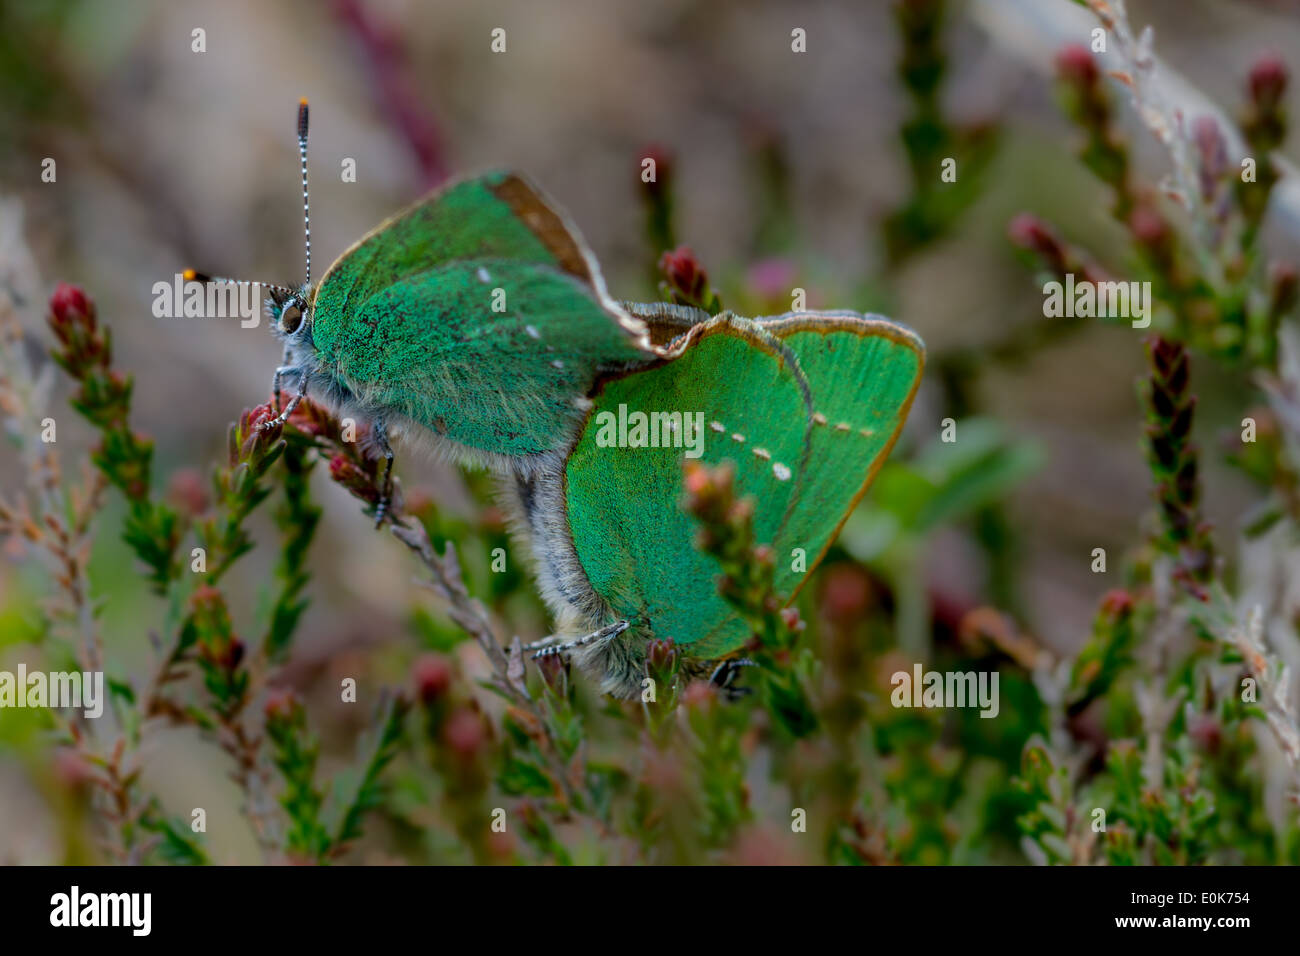 Mating green hairstreak butterfly, Wharfedale, Yorkshire, UK - Stock Image